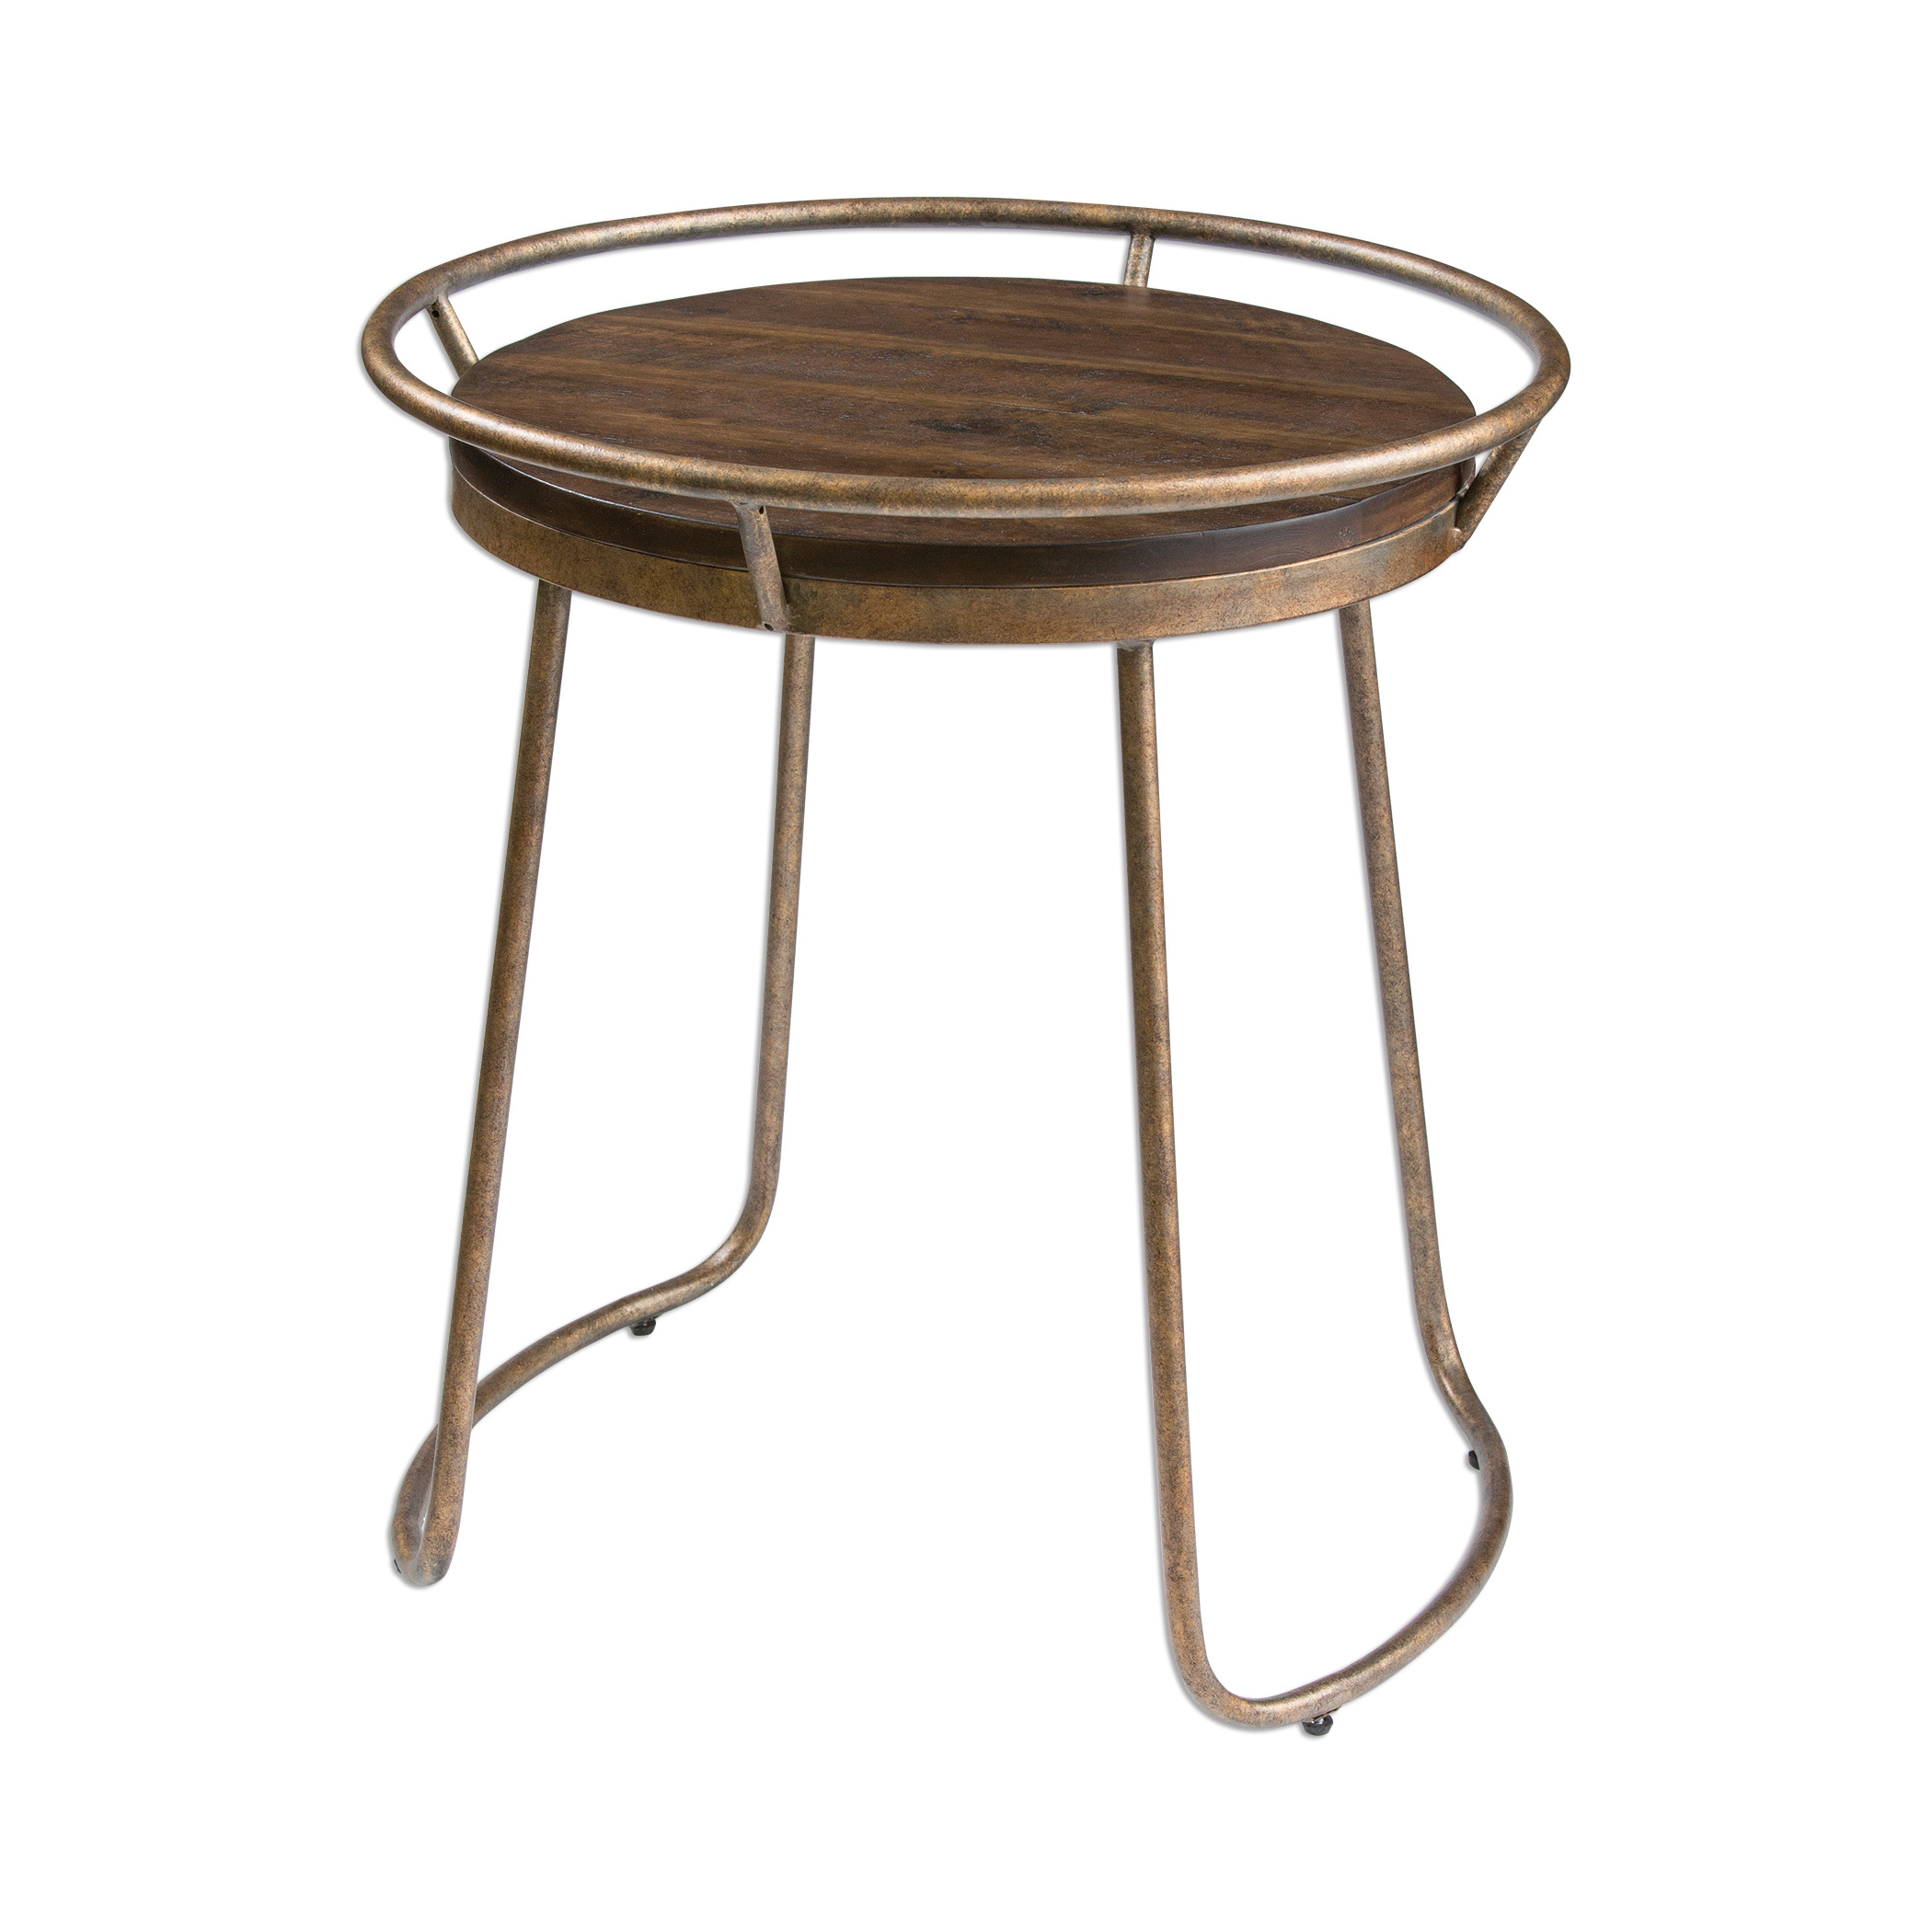 uttermost coffee accent tables rayen ashley furniture metal rain drum table narrow mirrored console painting pine live edge wood patio chairs contemporary outdoor pastel matching